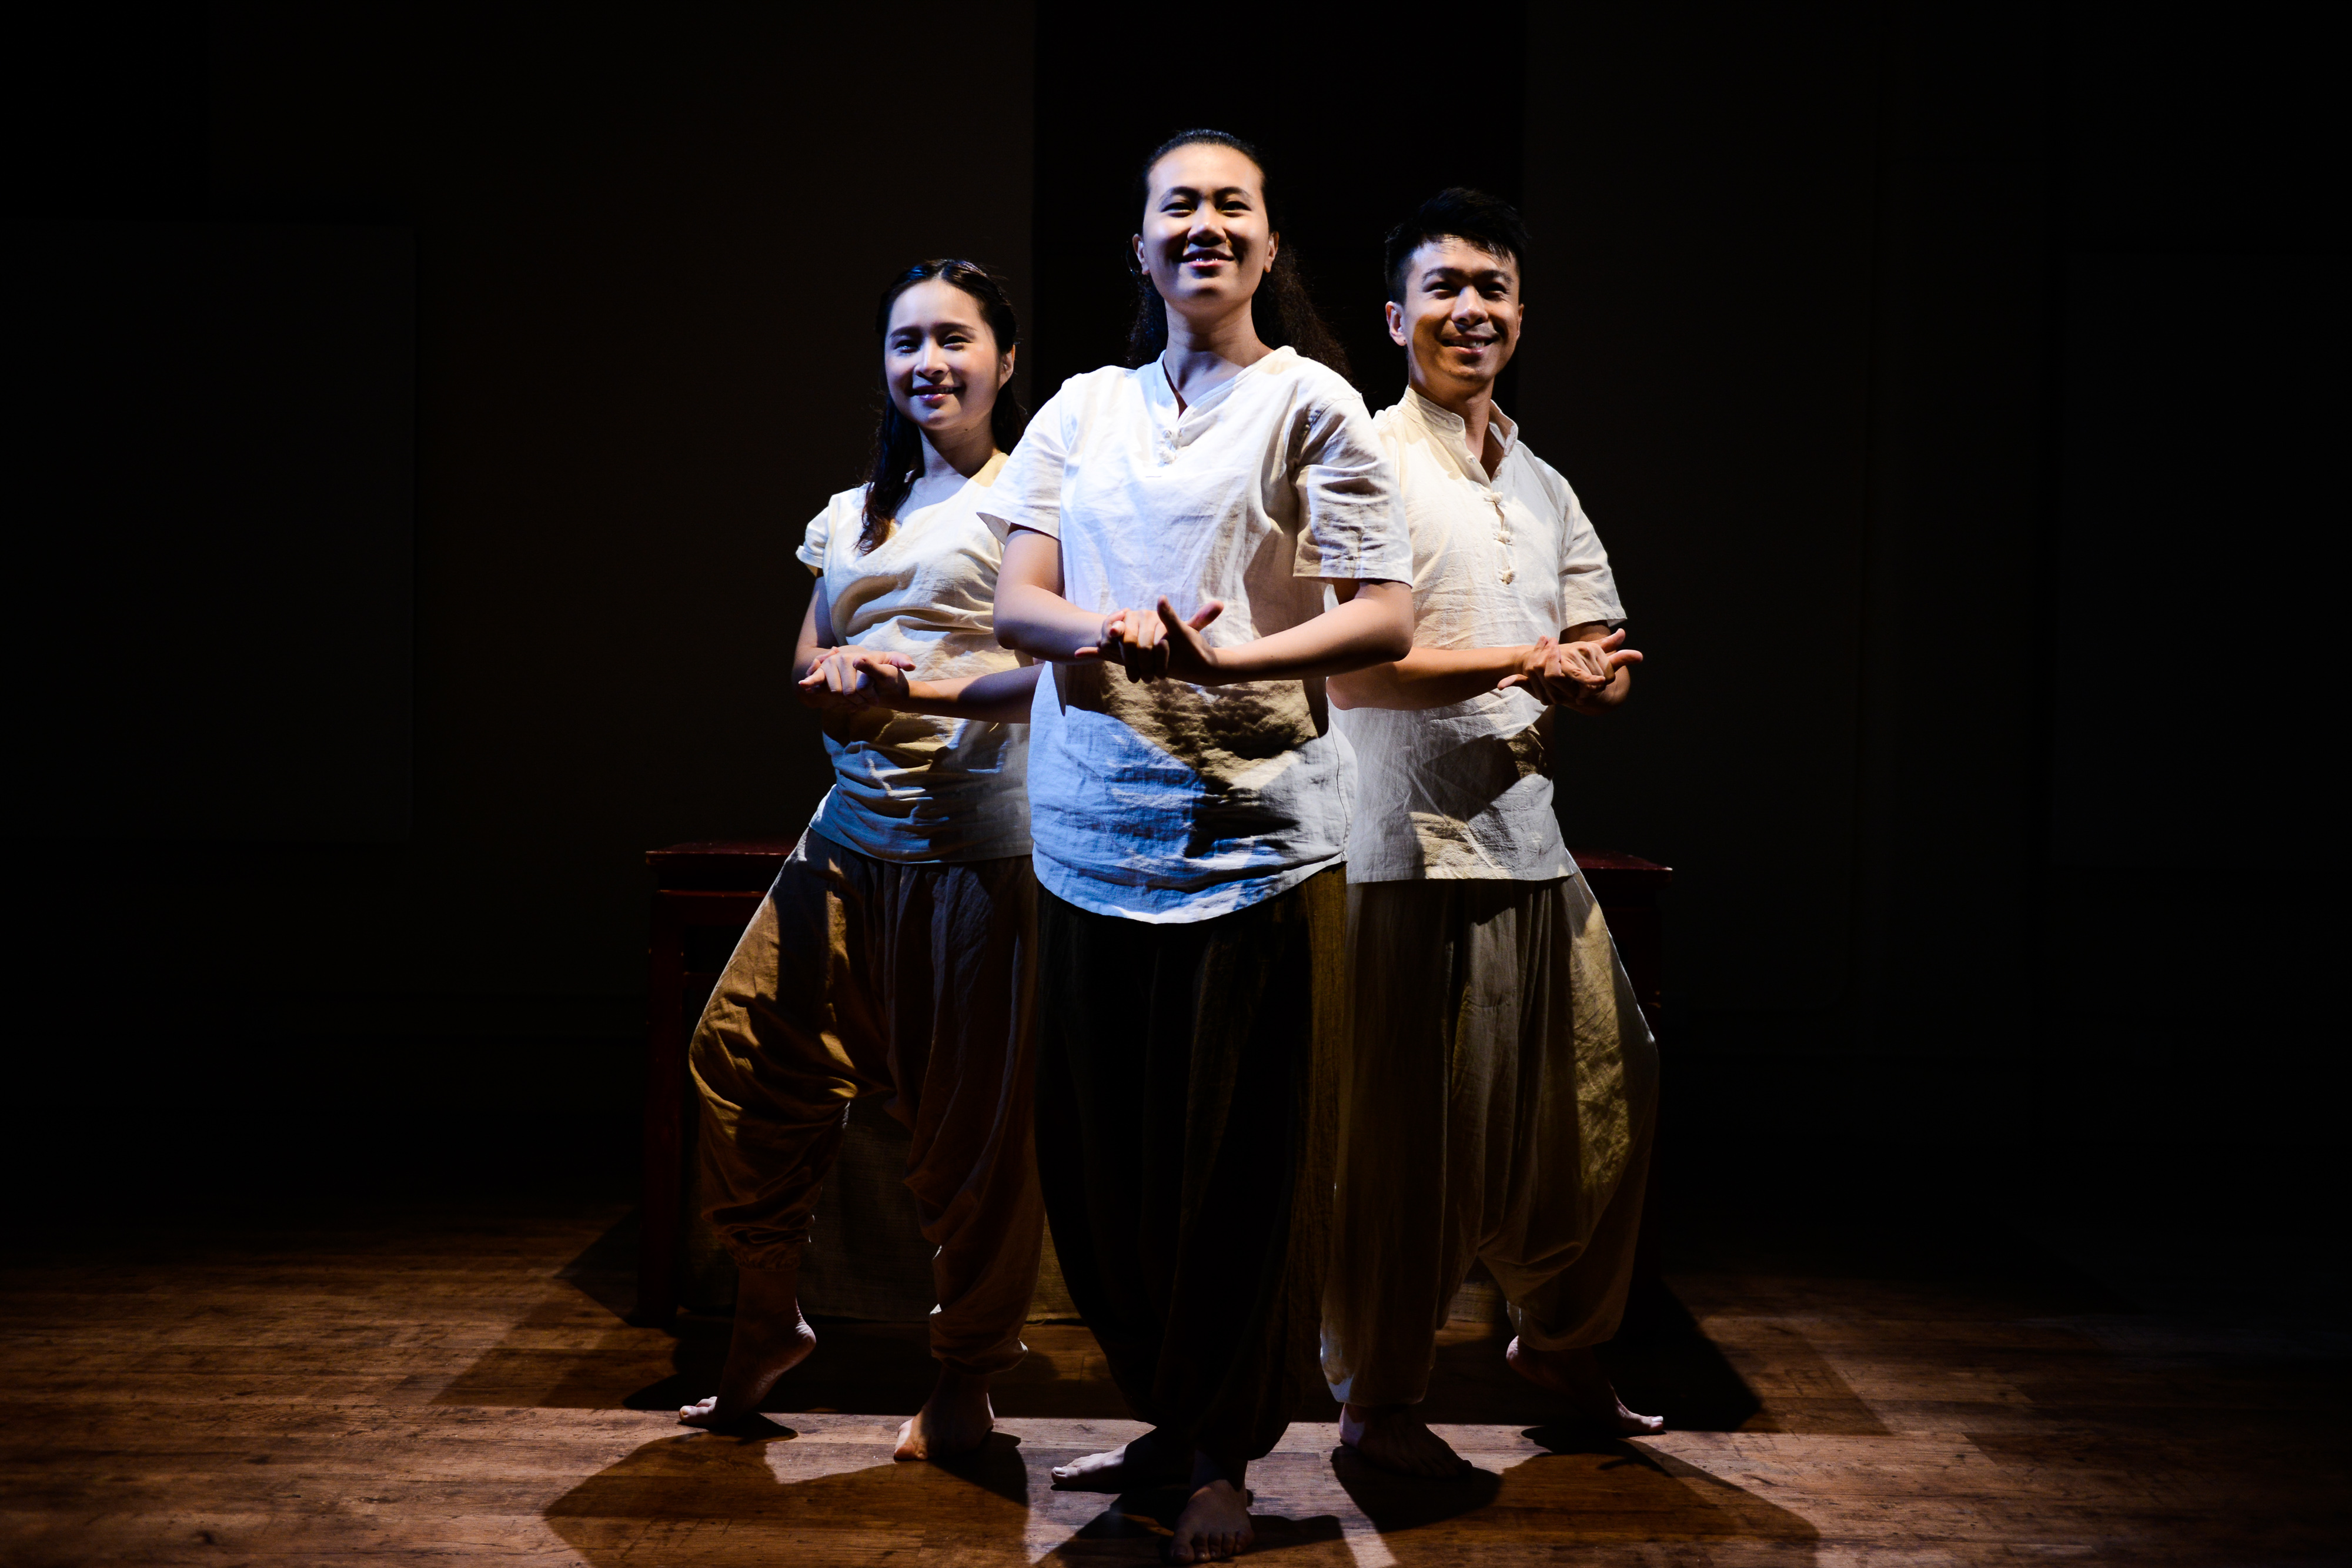 Milk and Honey | Featuring: Billy Sy, Lung Jes, Michelle Li | Tagged as: Milk and Honey, Show | Photo: Fung Wai Sun |  (Rooftop Productions • Hong Kong Theatre Company)